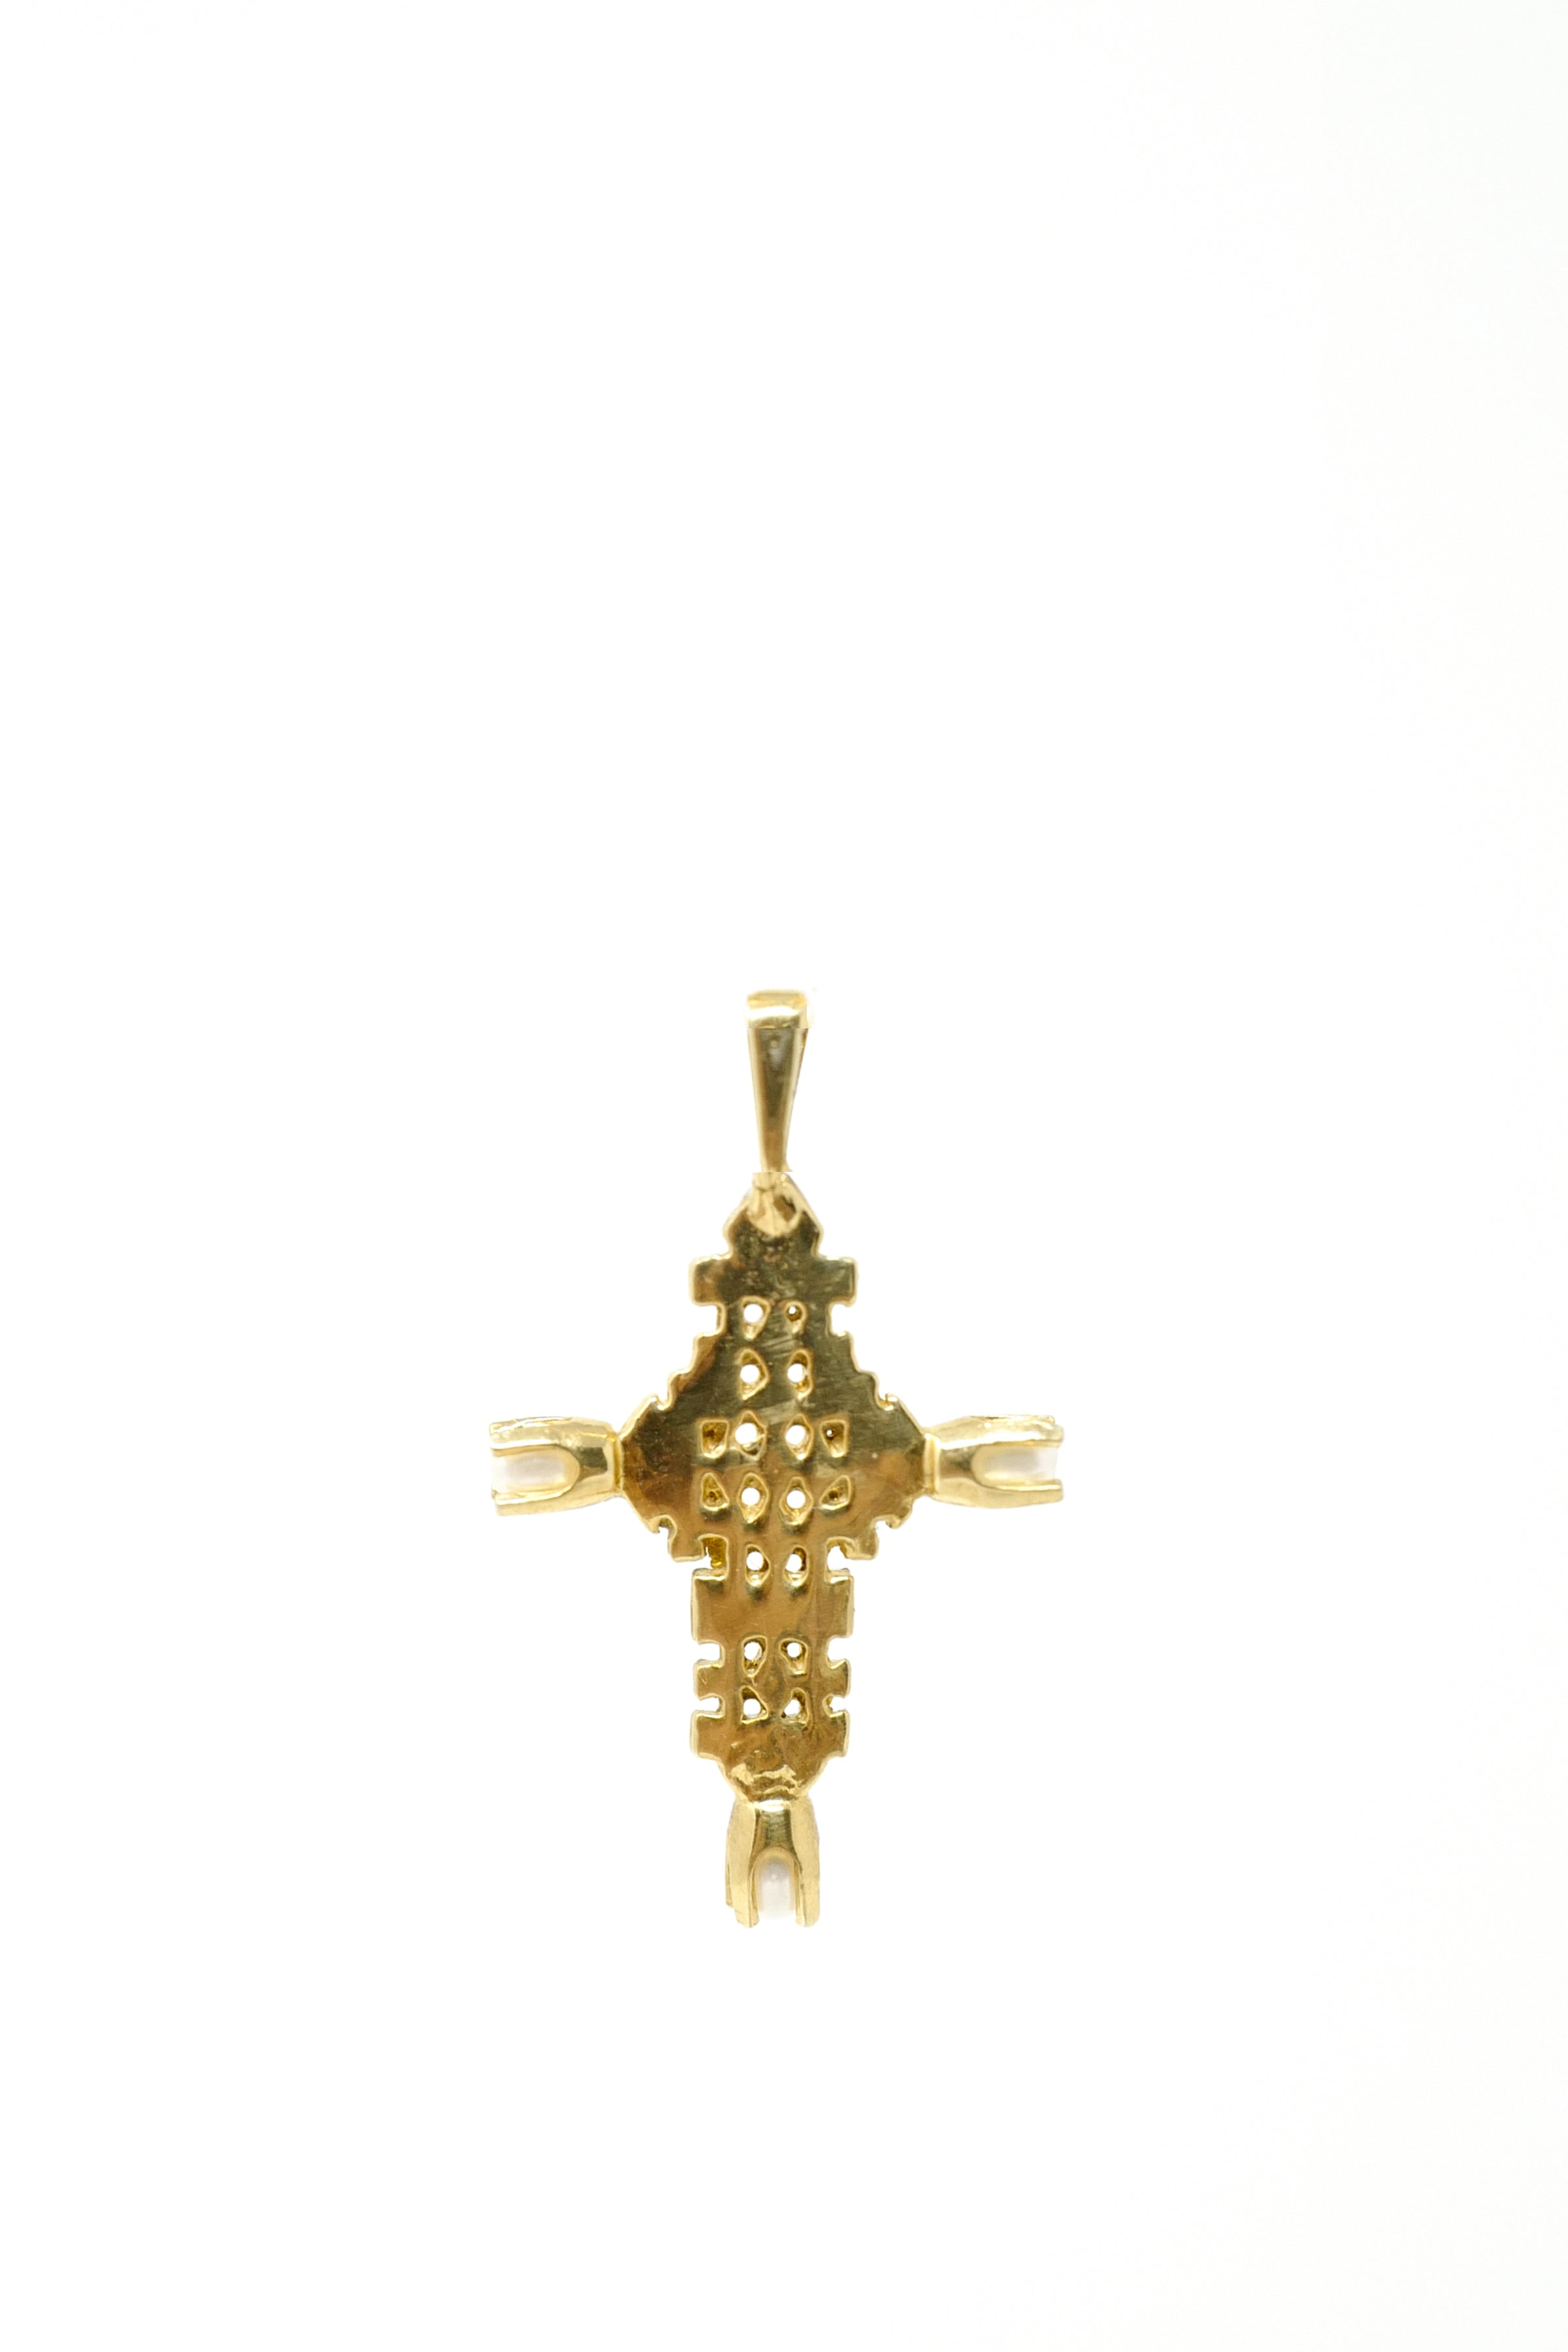 THE ETHIOPIAN Coptic Cross Pendant with Pearls